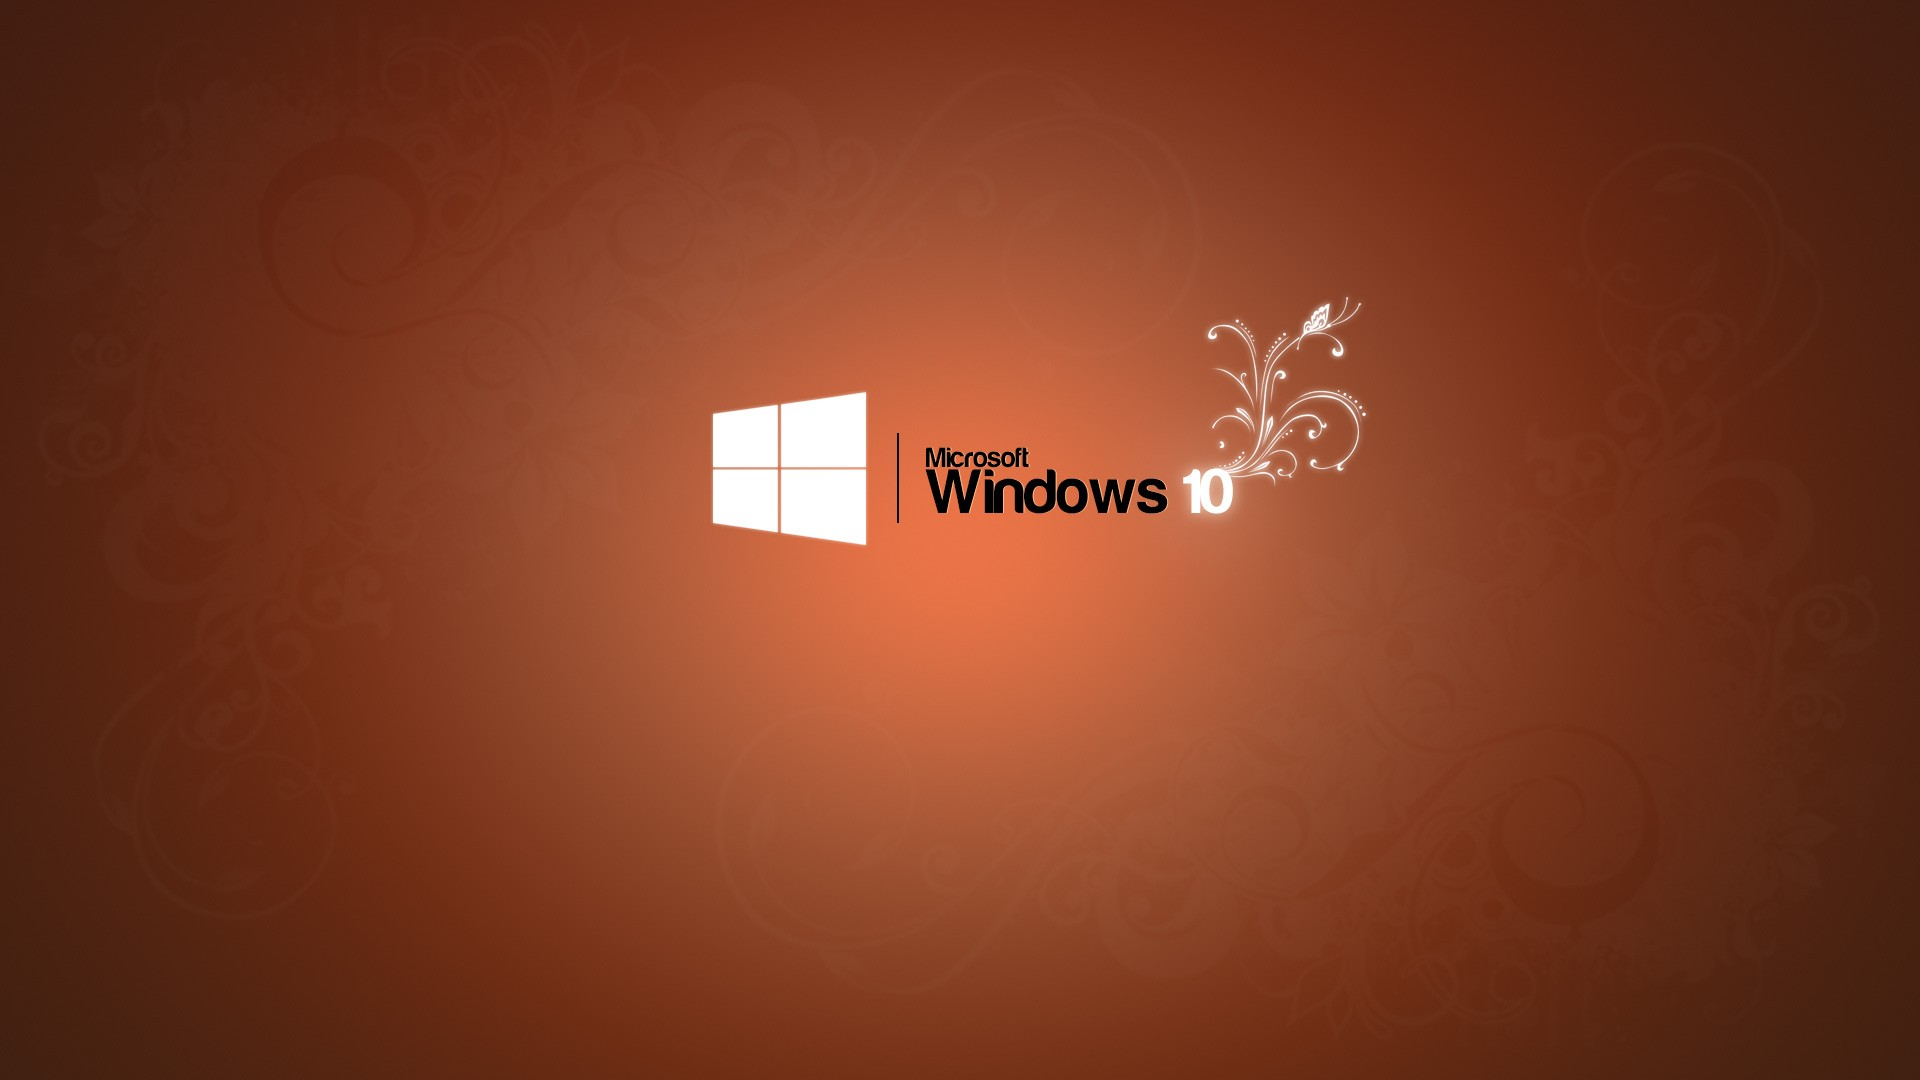 151032 cool windows 10 backgrounds 1920x1080 for hd